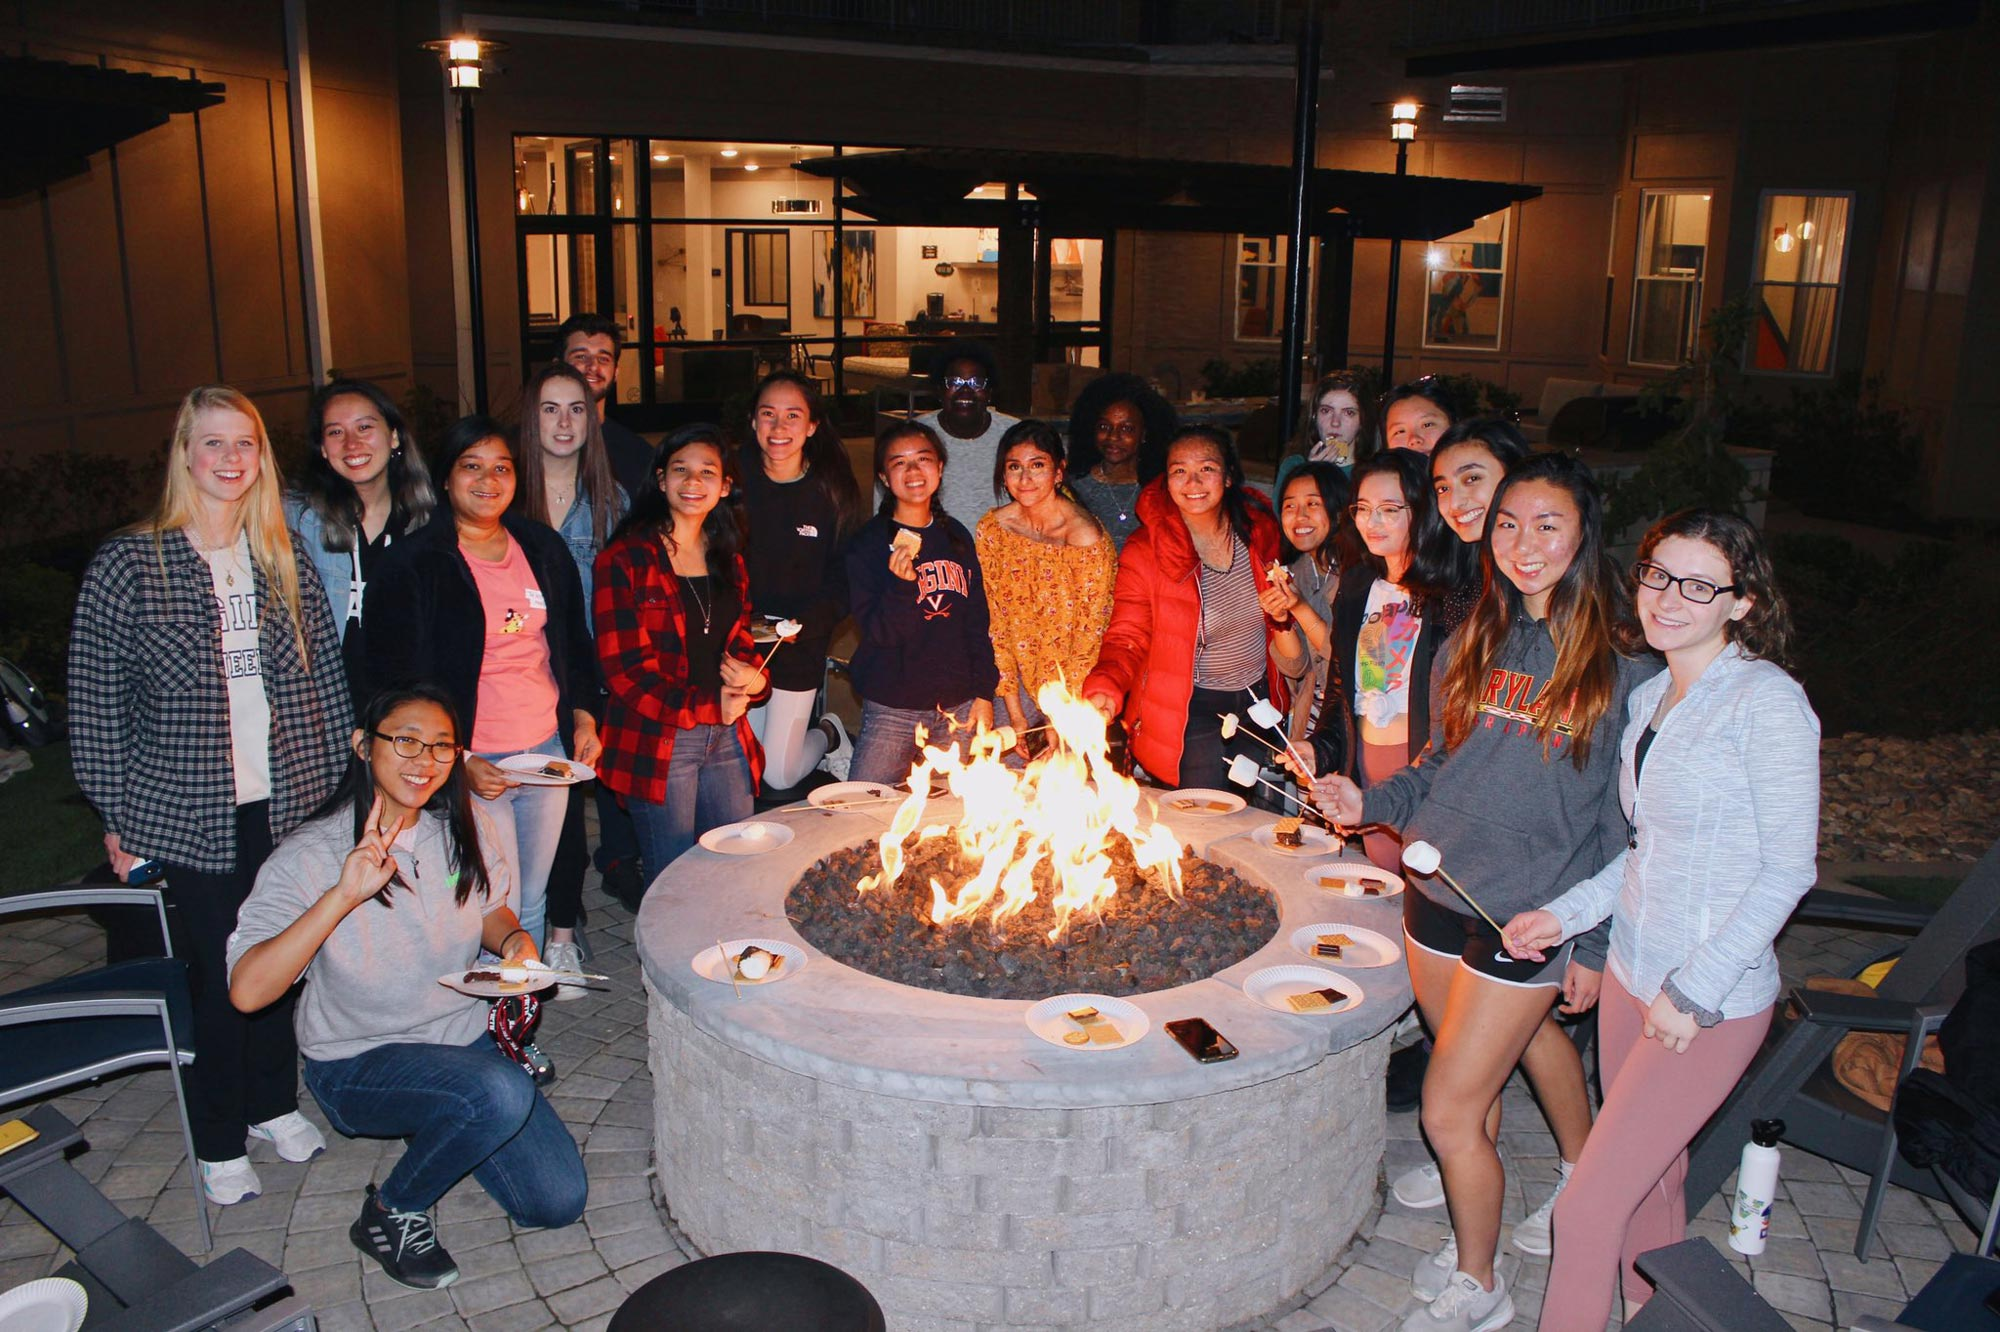 Girls Who Code, whose mission is to educate members with industry-relevant skills and to build community, gathered frequently for events like this one prior to the pandemic. (Contributed photo)